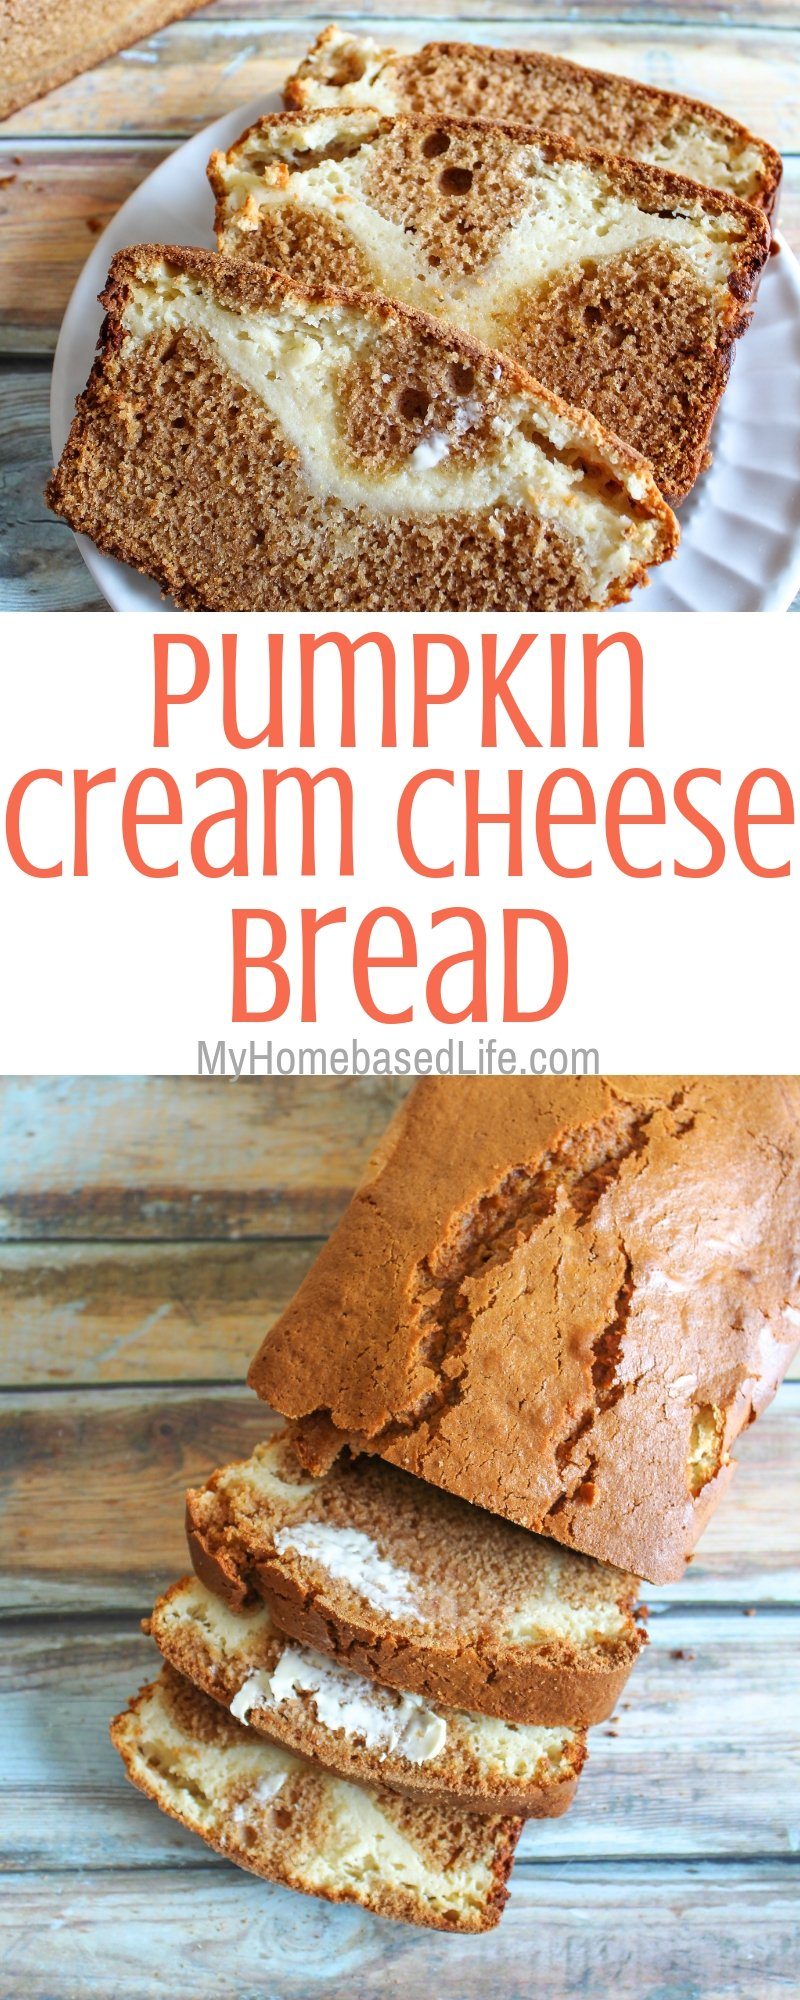 Perfect for a fall dessert recipe this Pumpkin Cream Cheese Filled Bread will not disappoint. It also makes the house smell amazing! #MakeItMazola #simpleswap #CollectiveBias #myhomebasedlife #pumpkinrecipes | Pumpkin Recipes | Cream Cheese Filled Bread | Pumpkin Bread | Fall Recipes | Dessert Recipes | Breakfast Recipes